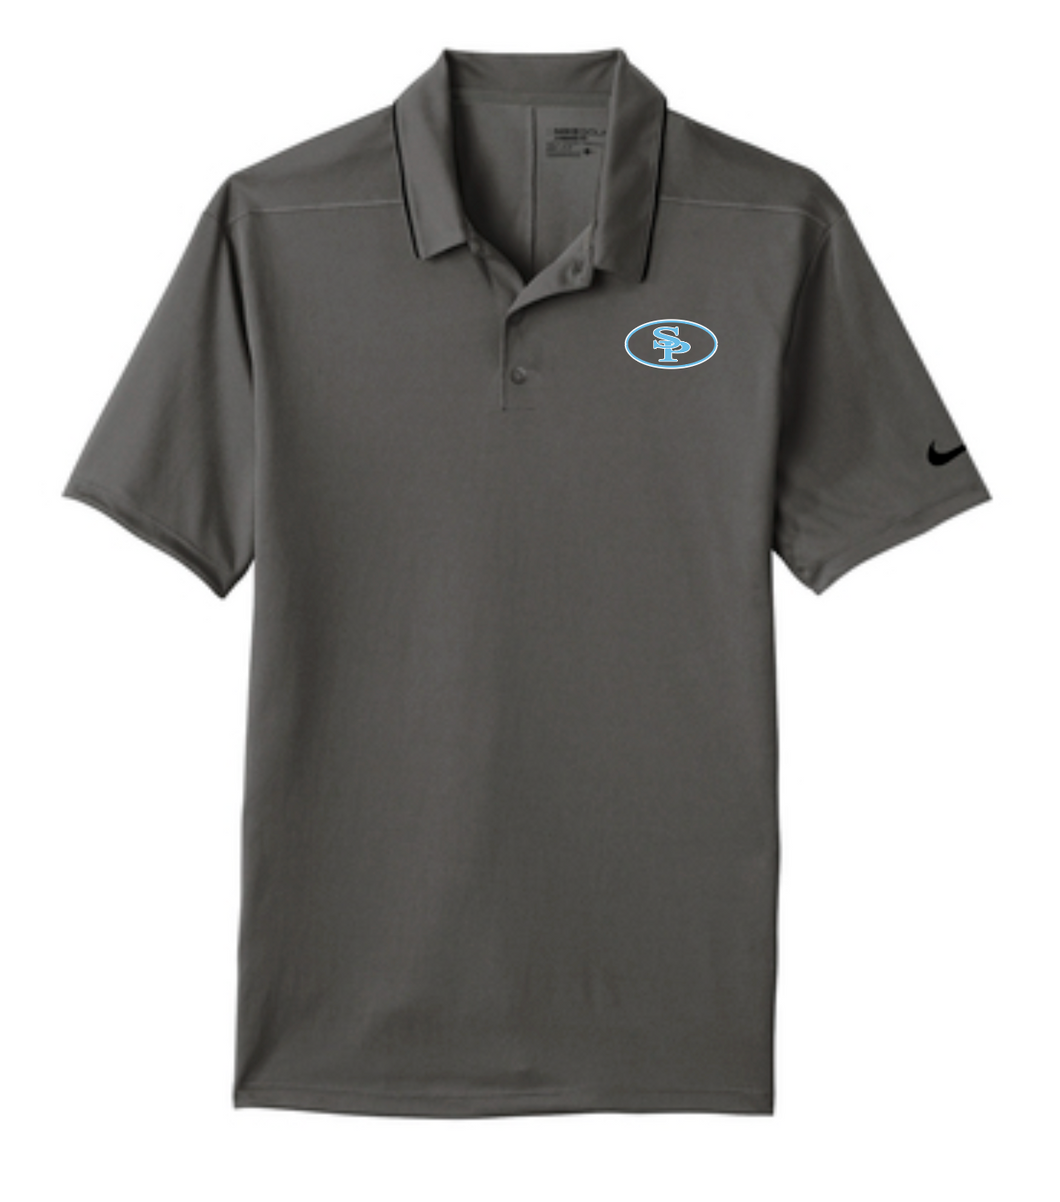 Spain Park Nike Dri-FIT Edge Tipped Polo